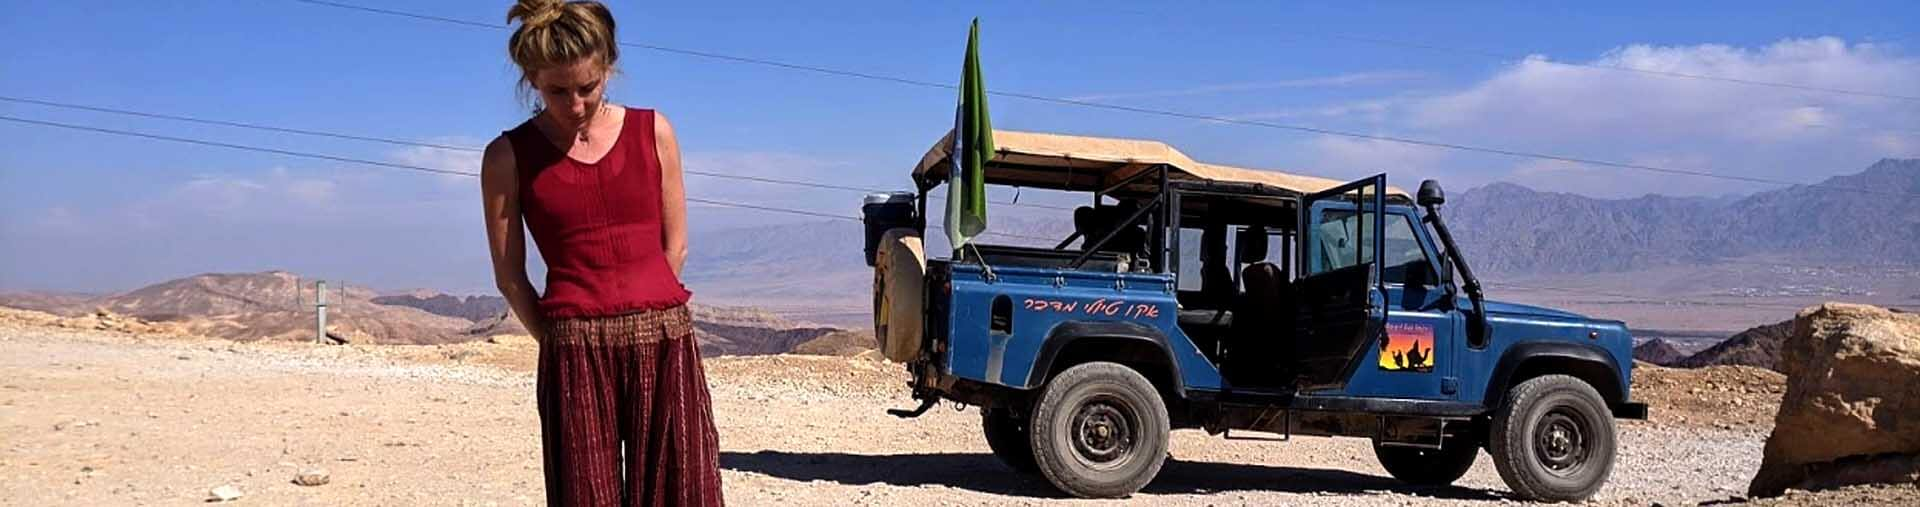 EILAT JEEP TOUR